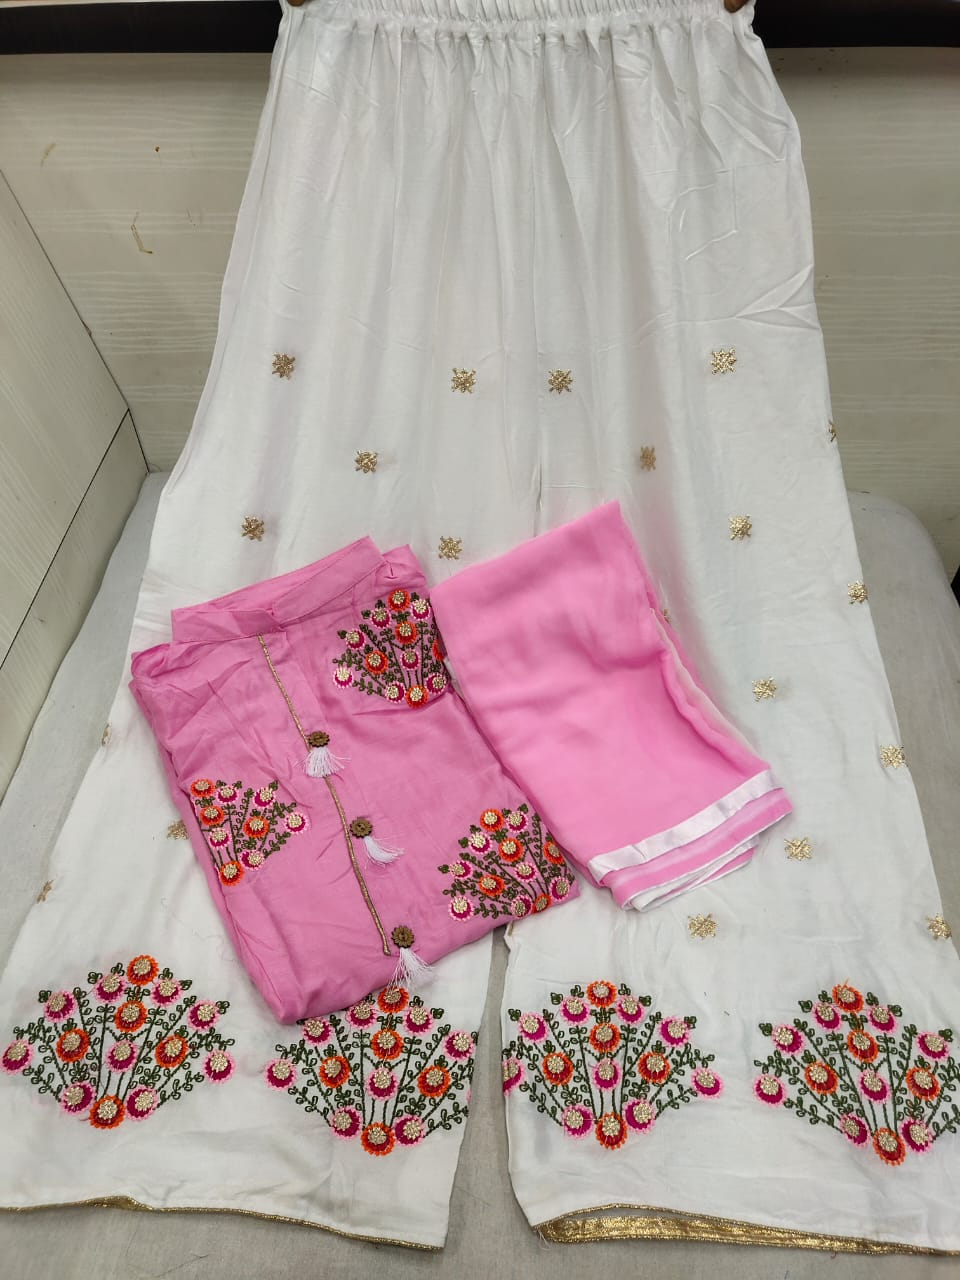 Radiant Light Pink Color Fancy Embroidered Work Rayon Jhumkha Button Ready Made Plazo Salwar Suit for Women